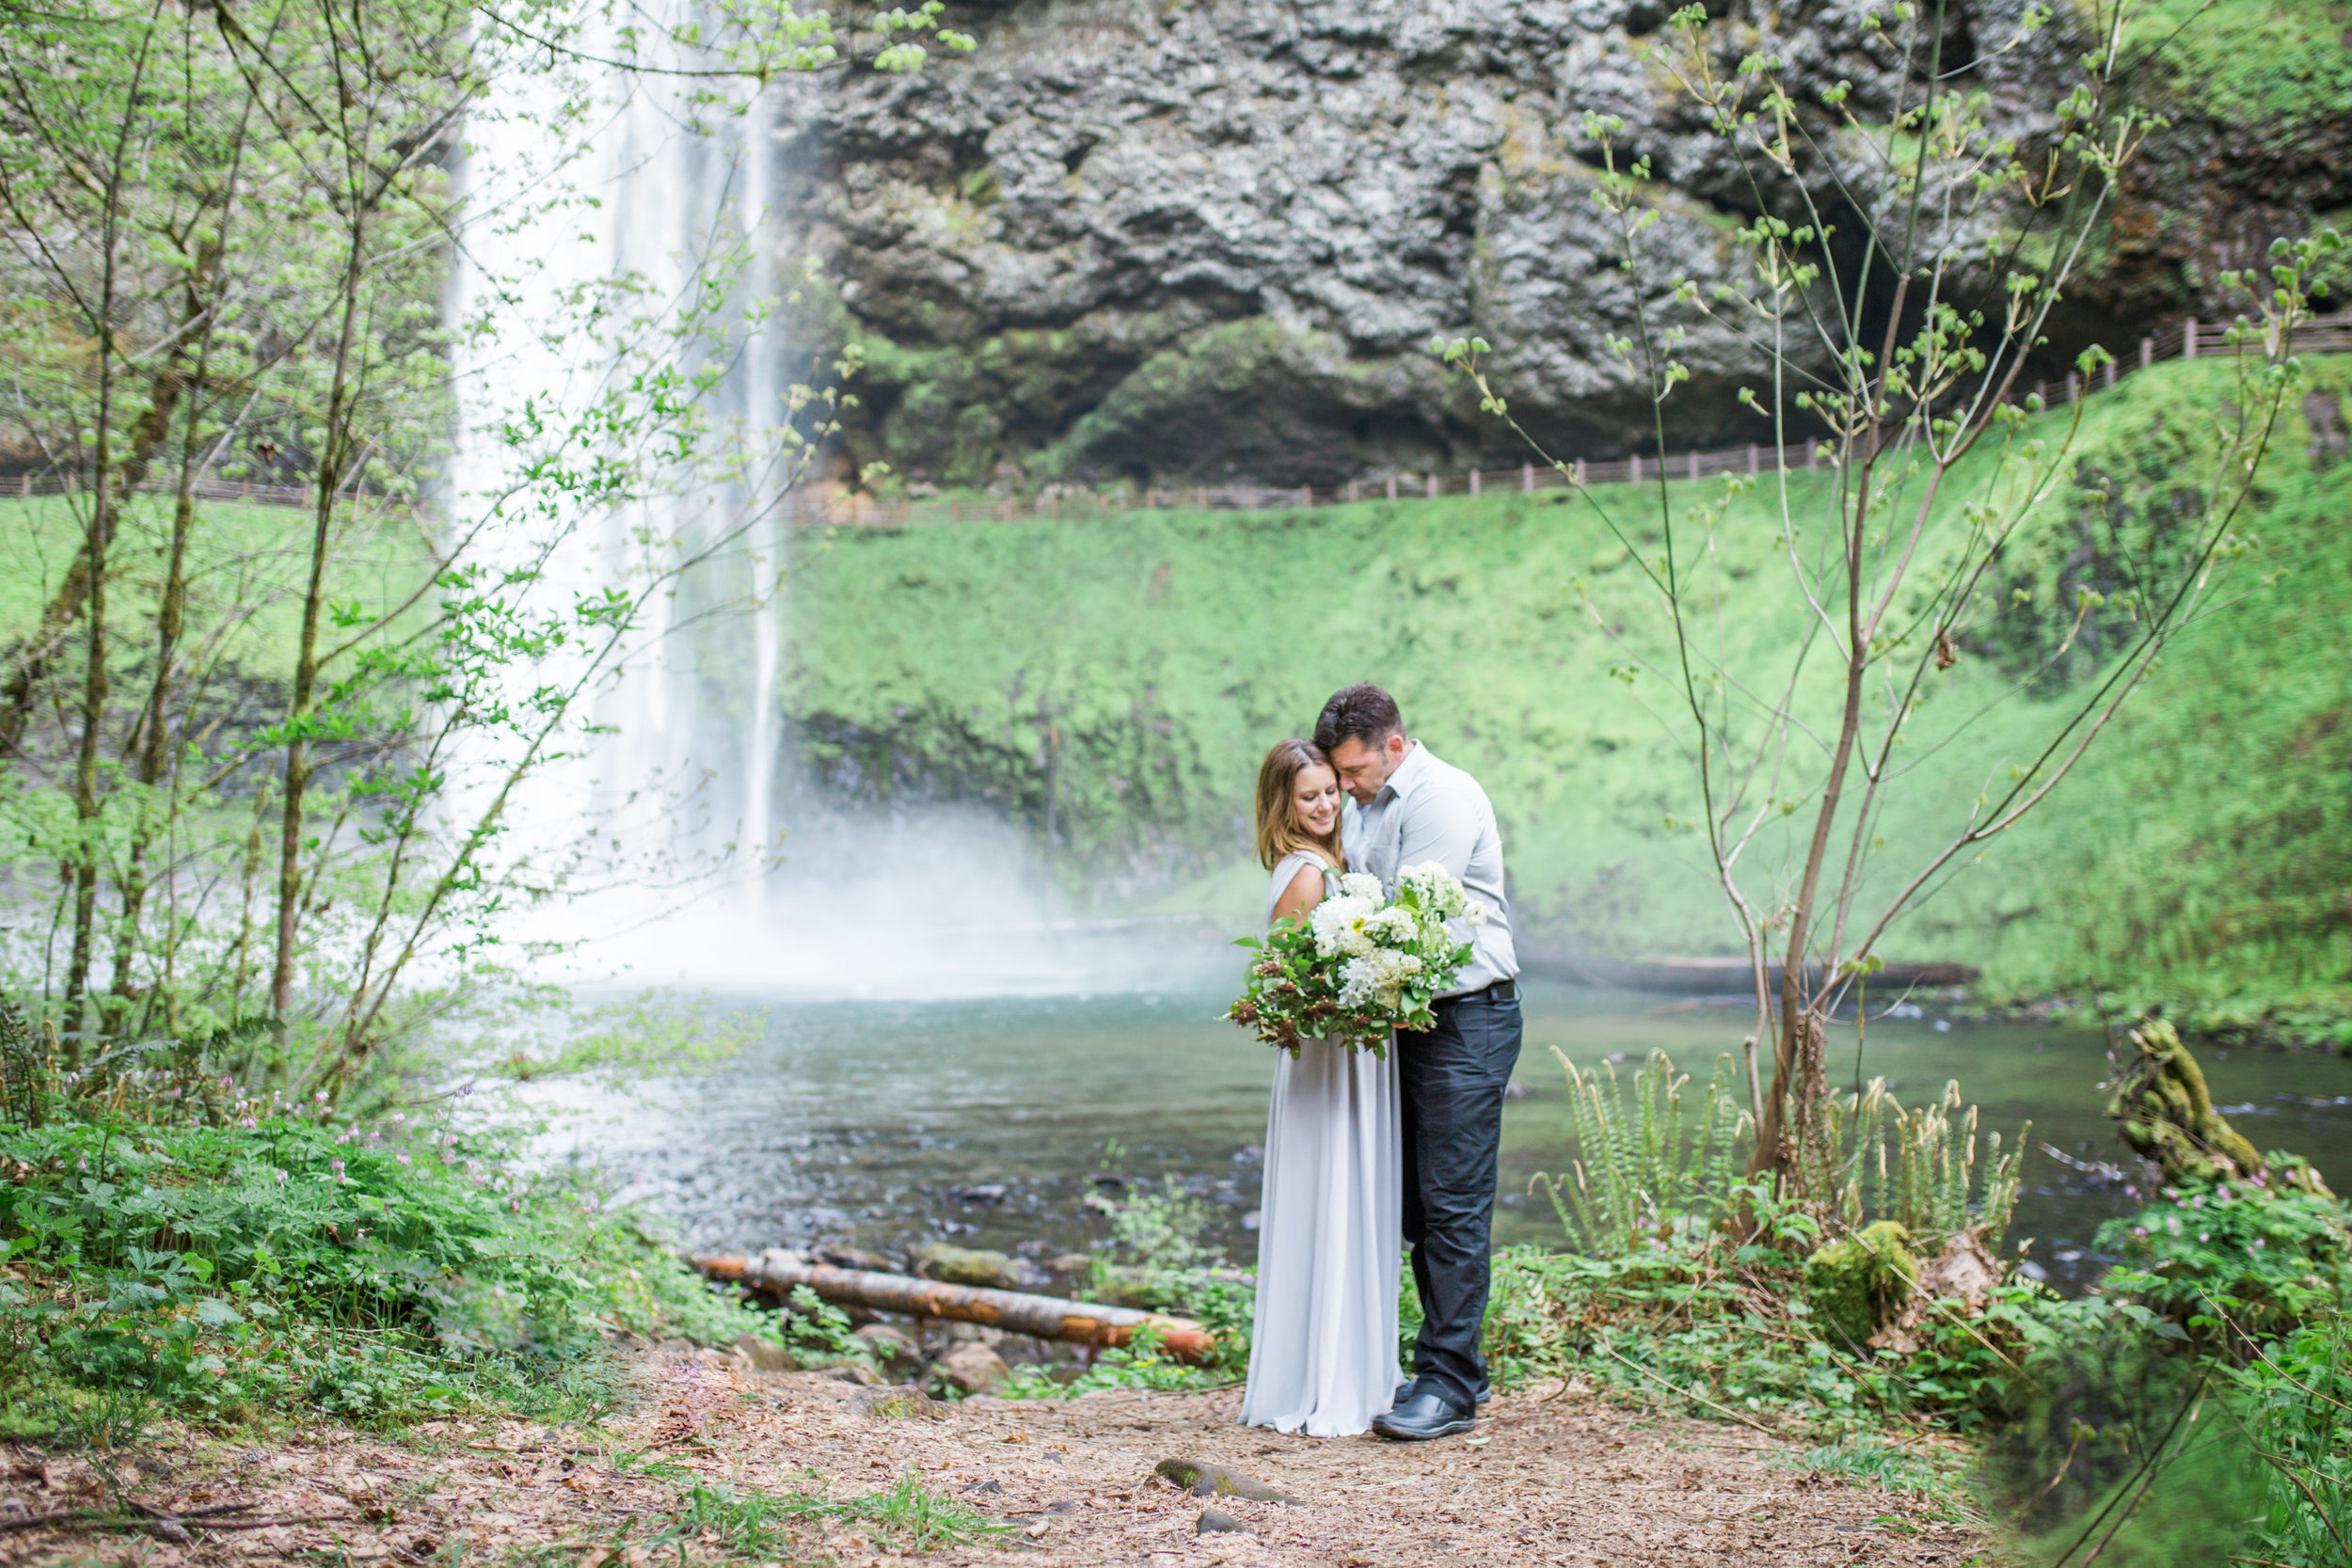 This sweet moment under this waterfall